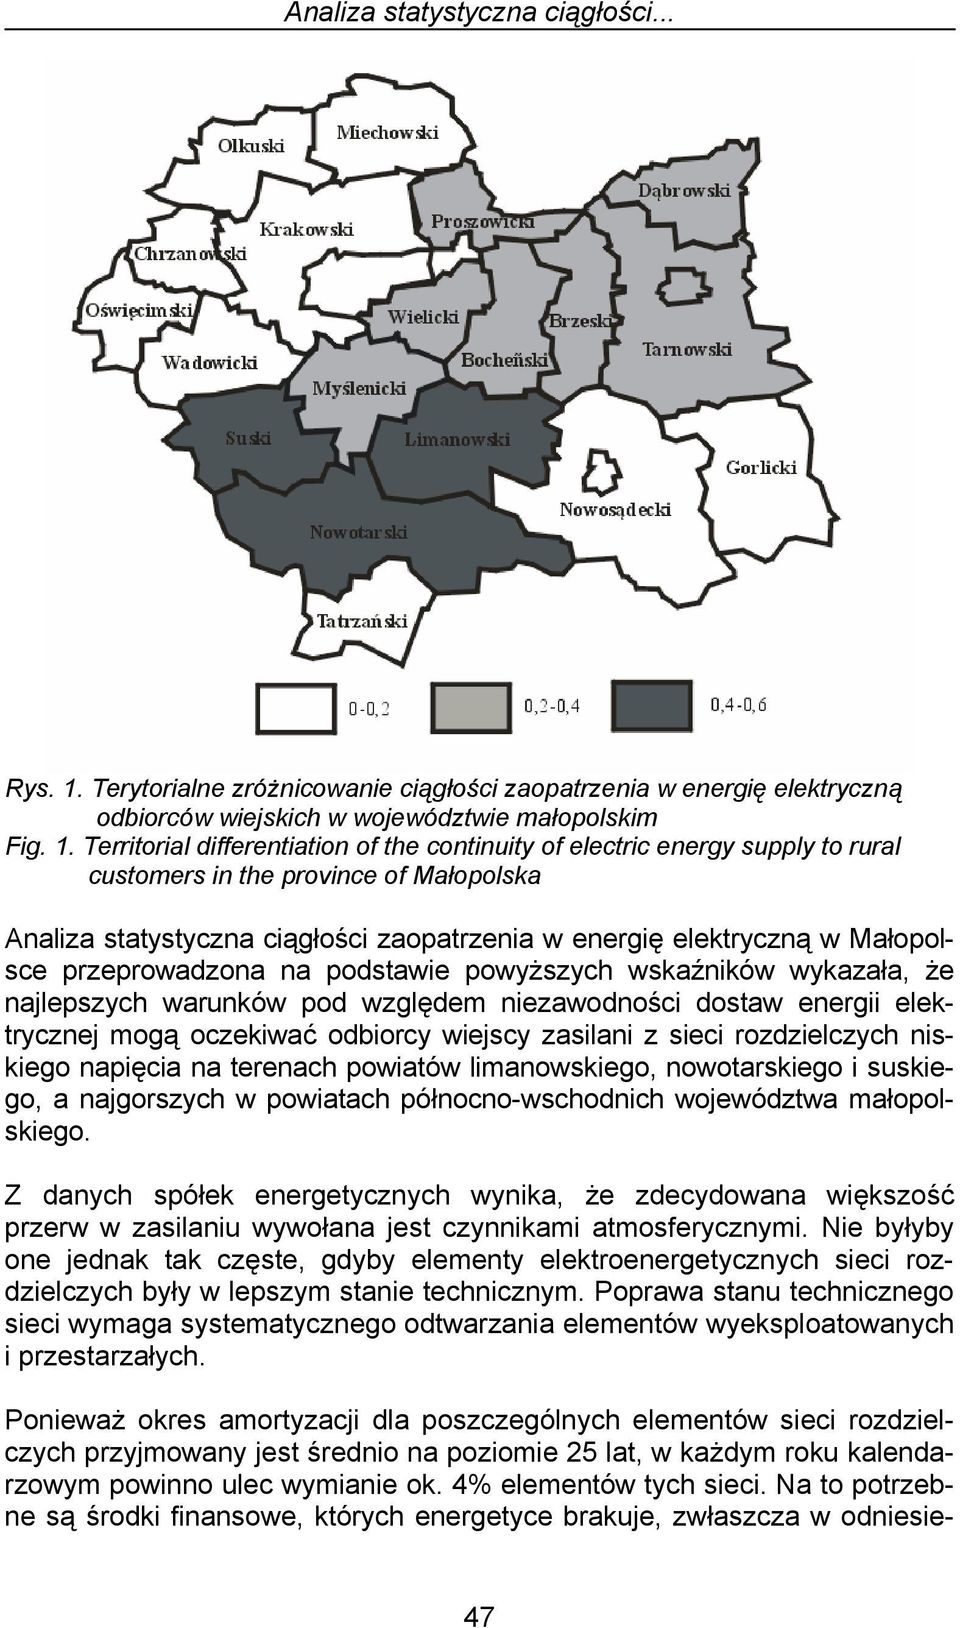 Territorial differentiation of the continuity of electric energy supply to rural customers in the province of Małopolska Analiza statystyczna ciągłości zaopatrzenia w energię elektryczną w Małopolsce